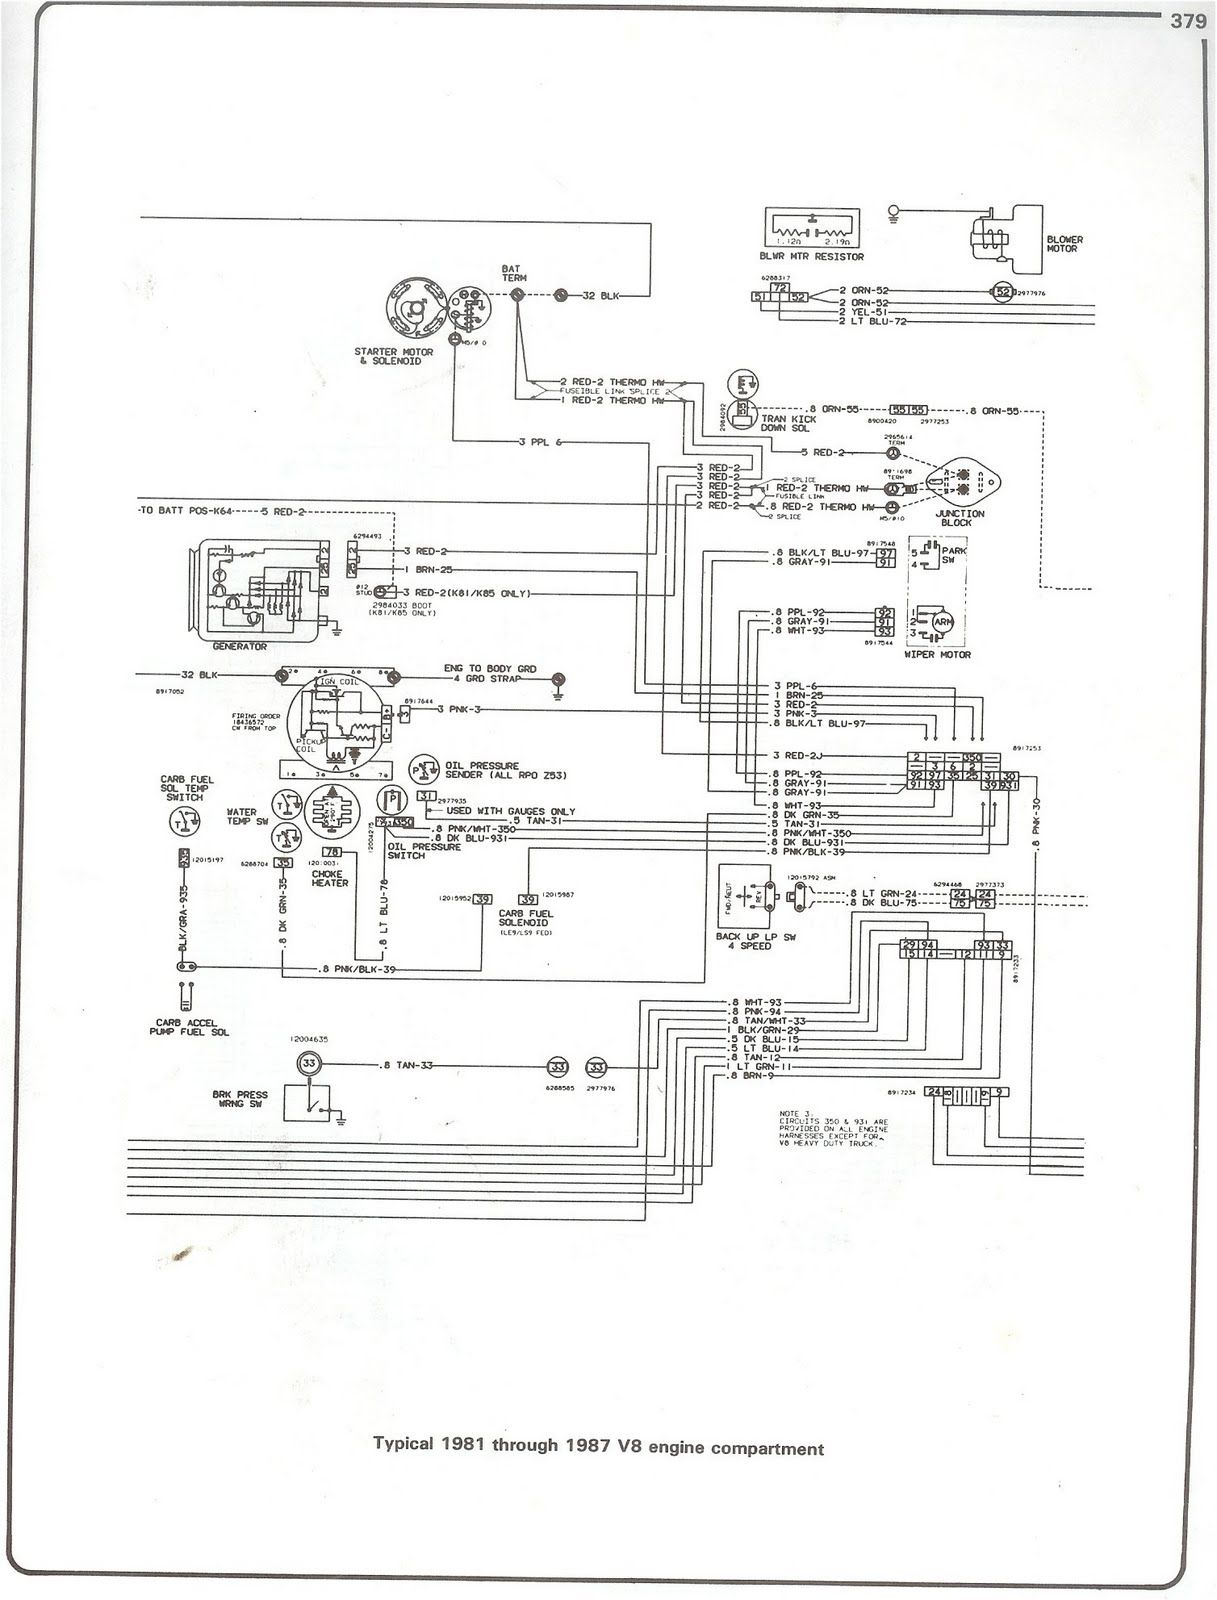 [SCHEMATICS_44OR]  This is engine compartment wiring diagram for 1981 trough 1987 Chevrolet V8  Truck. Description from autowiringdiag… | Chevy trucks, 1979 chevy truck,  87 chevy truck | Light Switch Wiring Diagram 1981 C10 |  | Pinterest